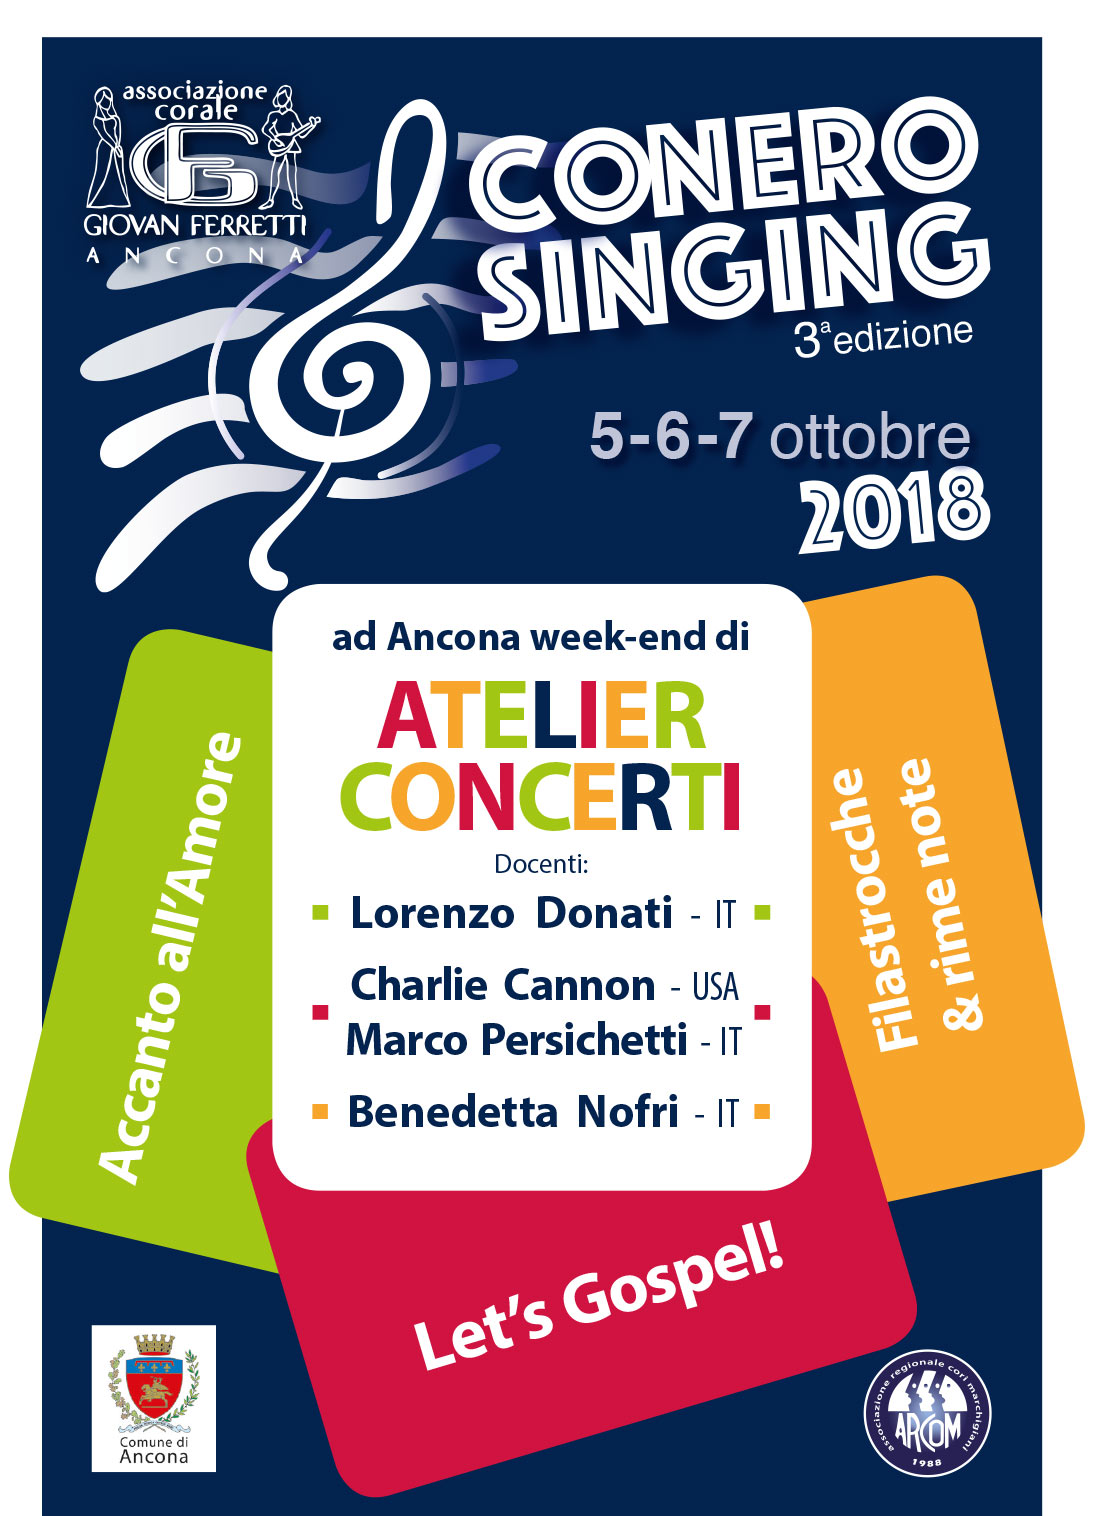 Brochure Conero Singing 2018